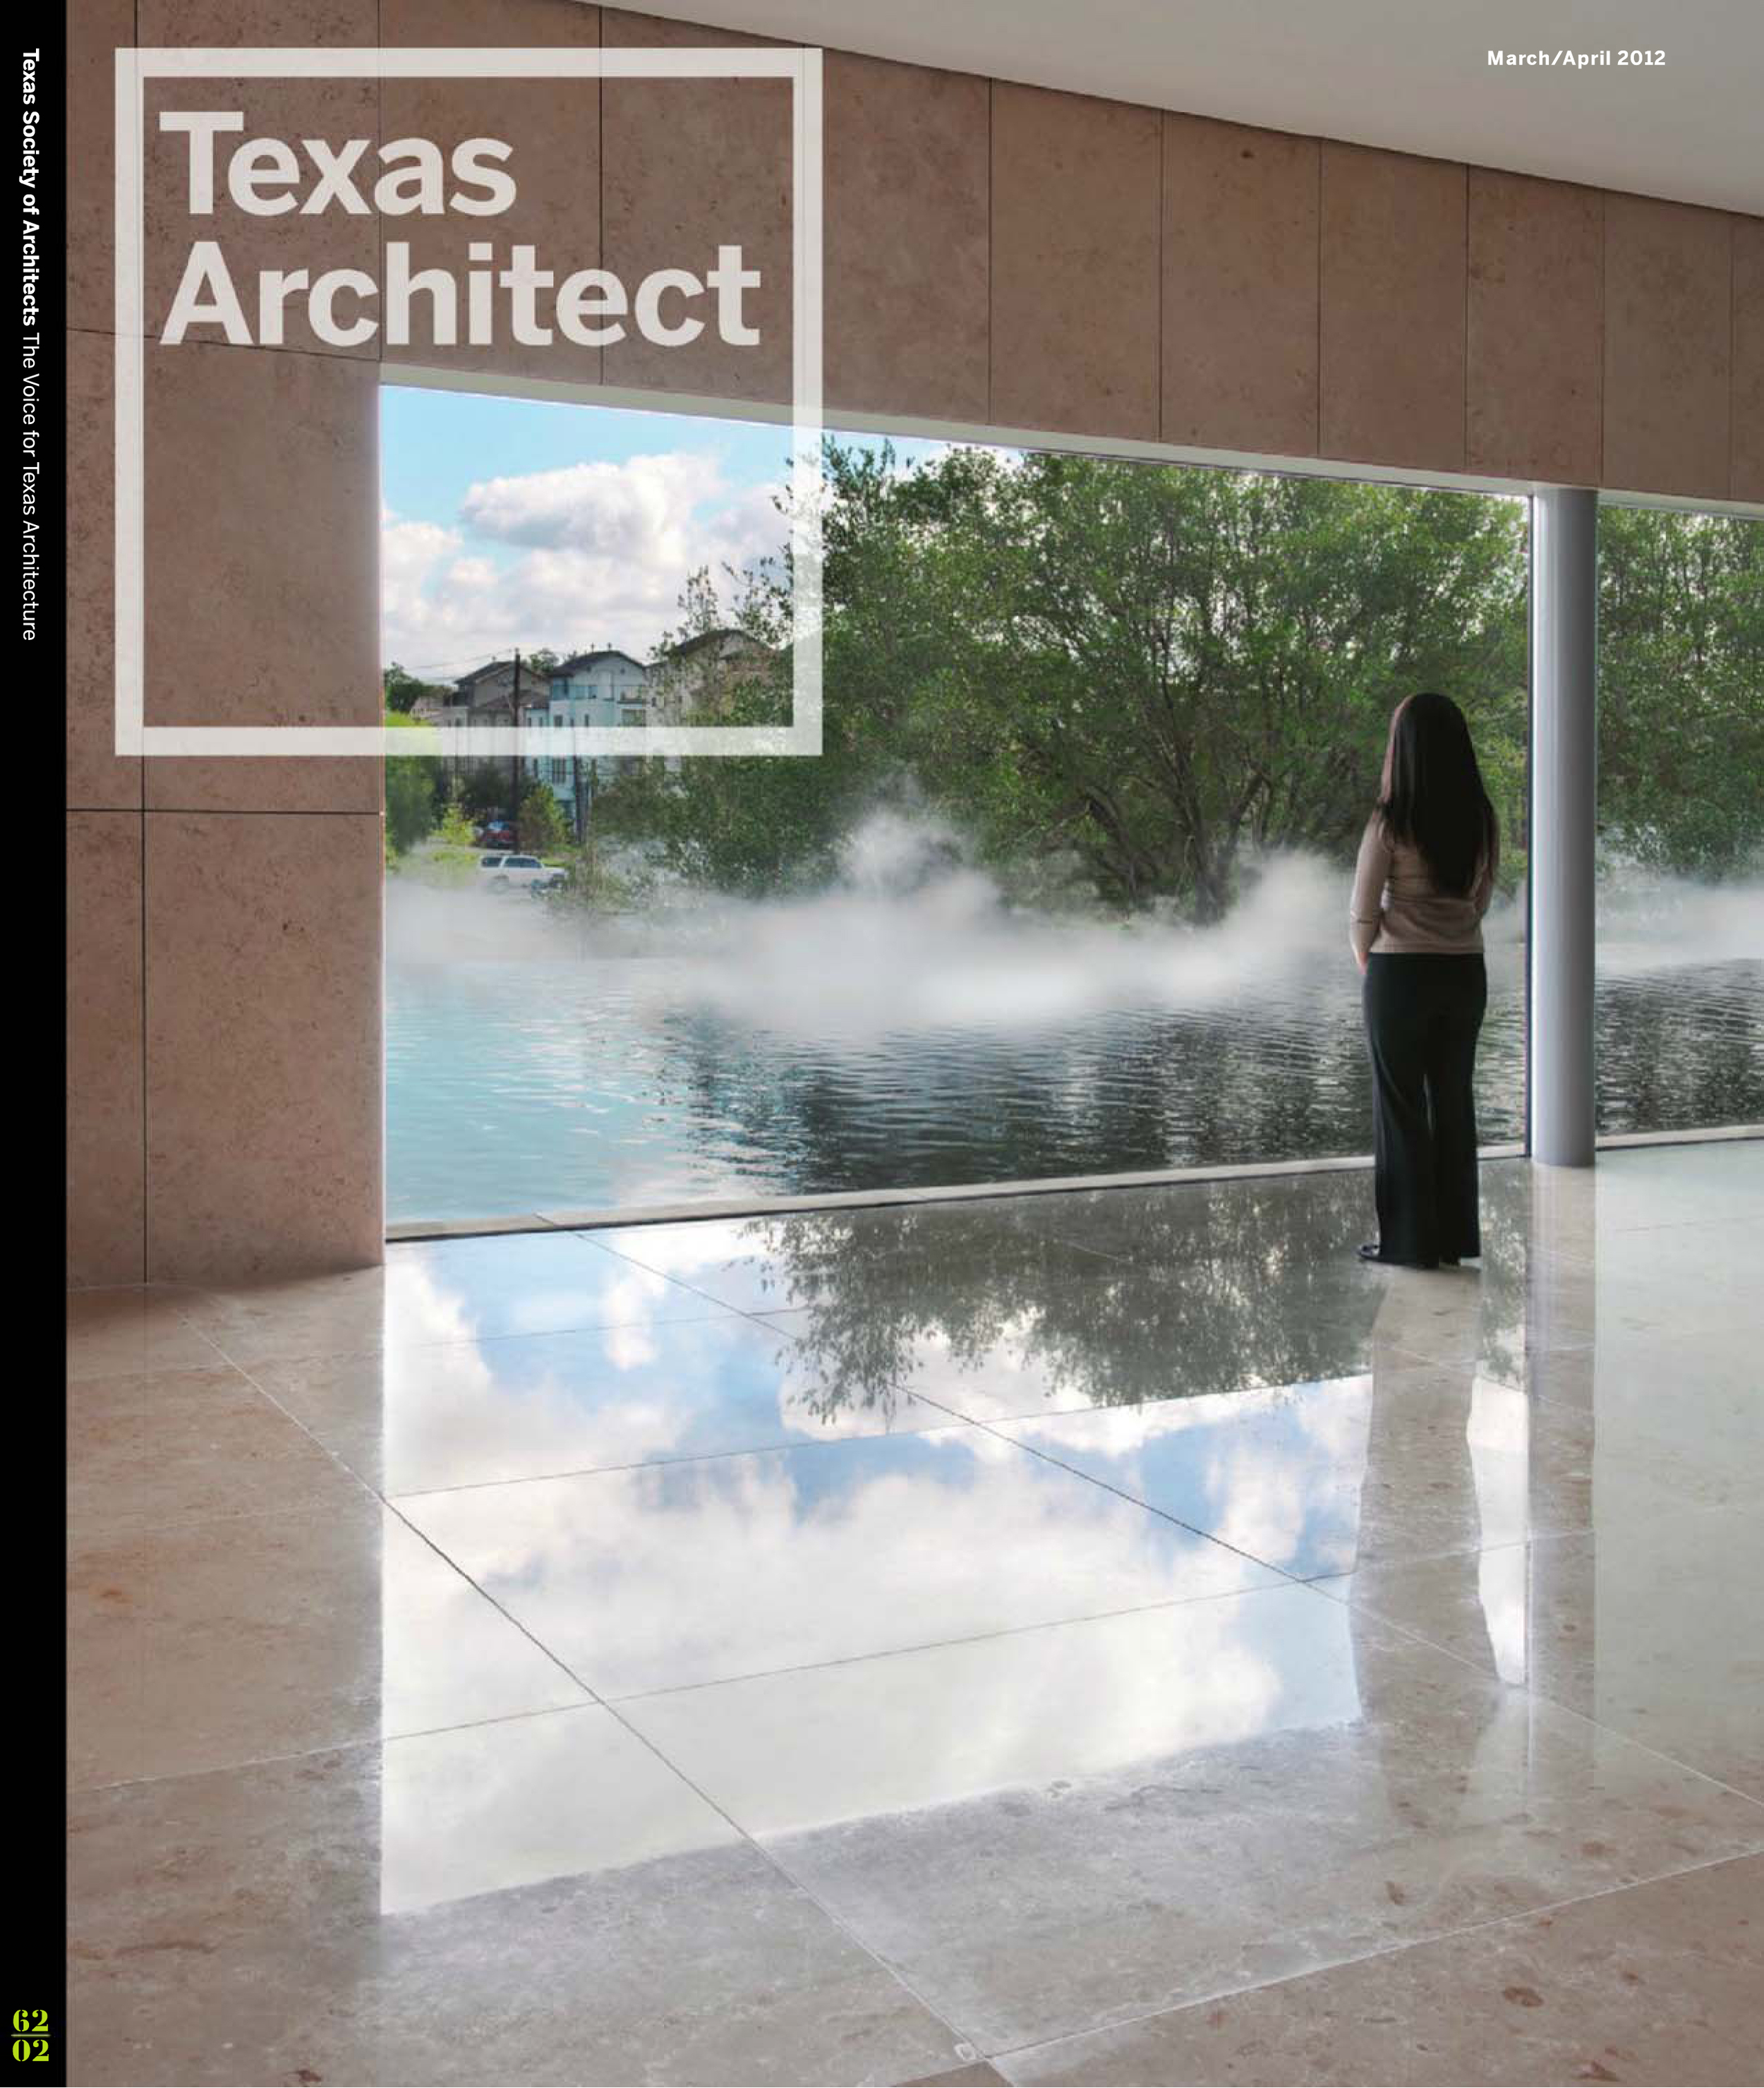 2012_03_Texas Architect_Cover.jpg